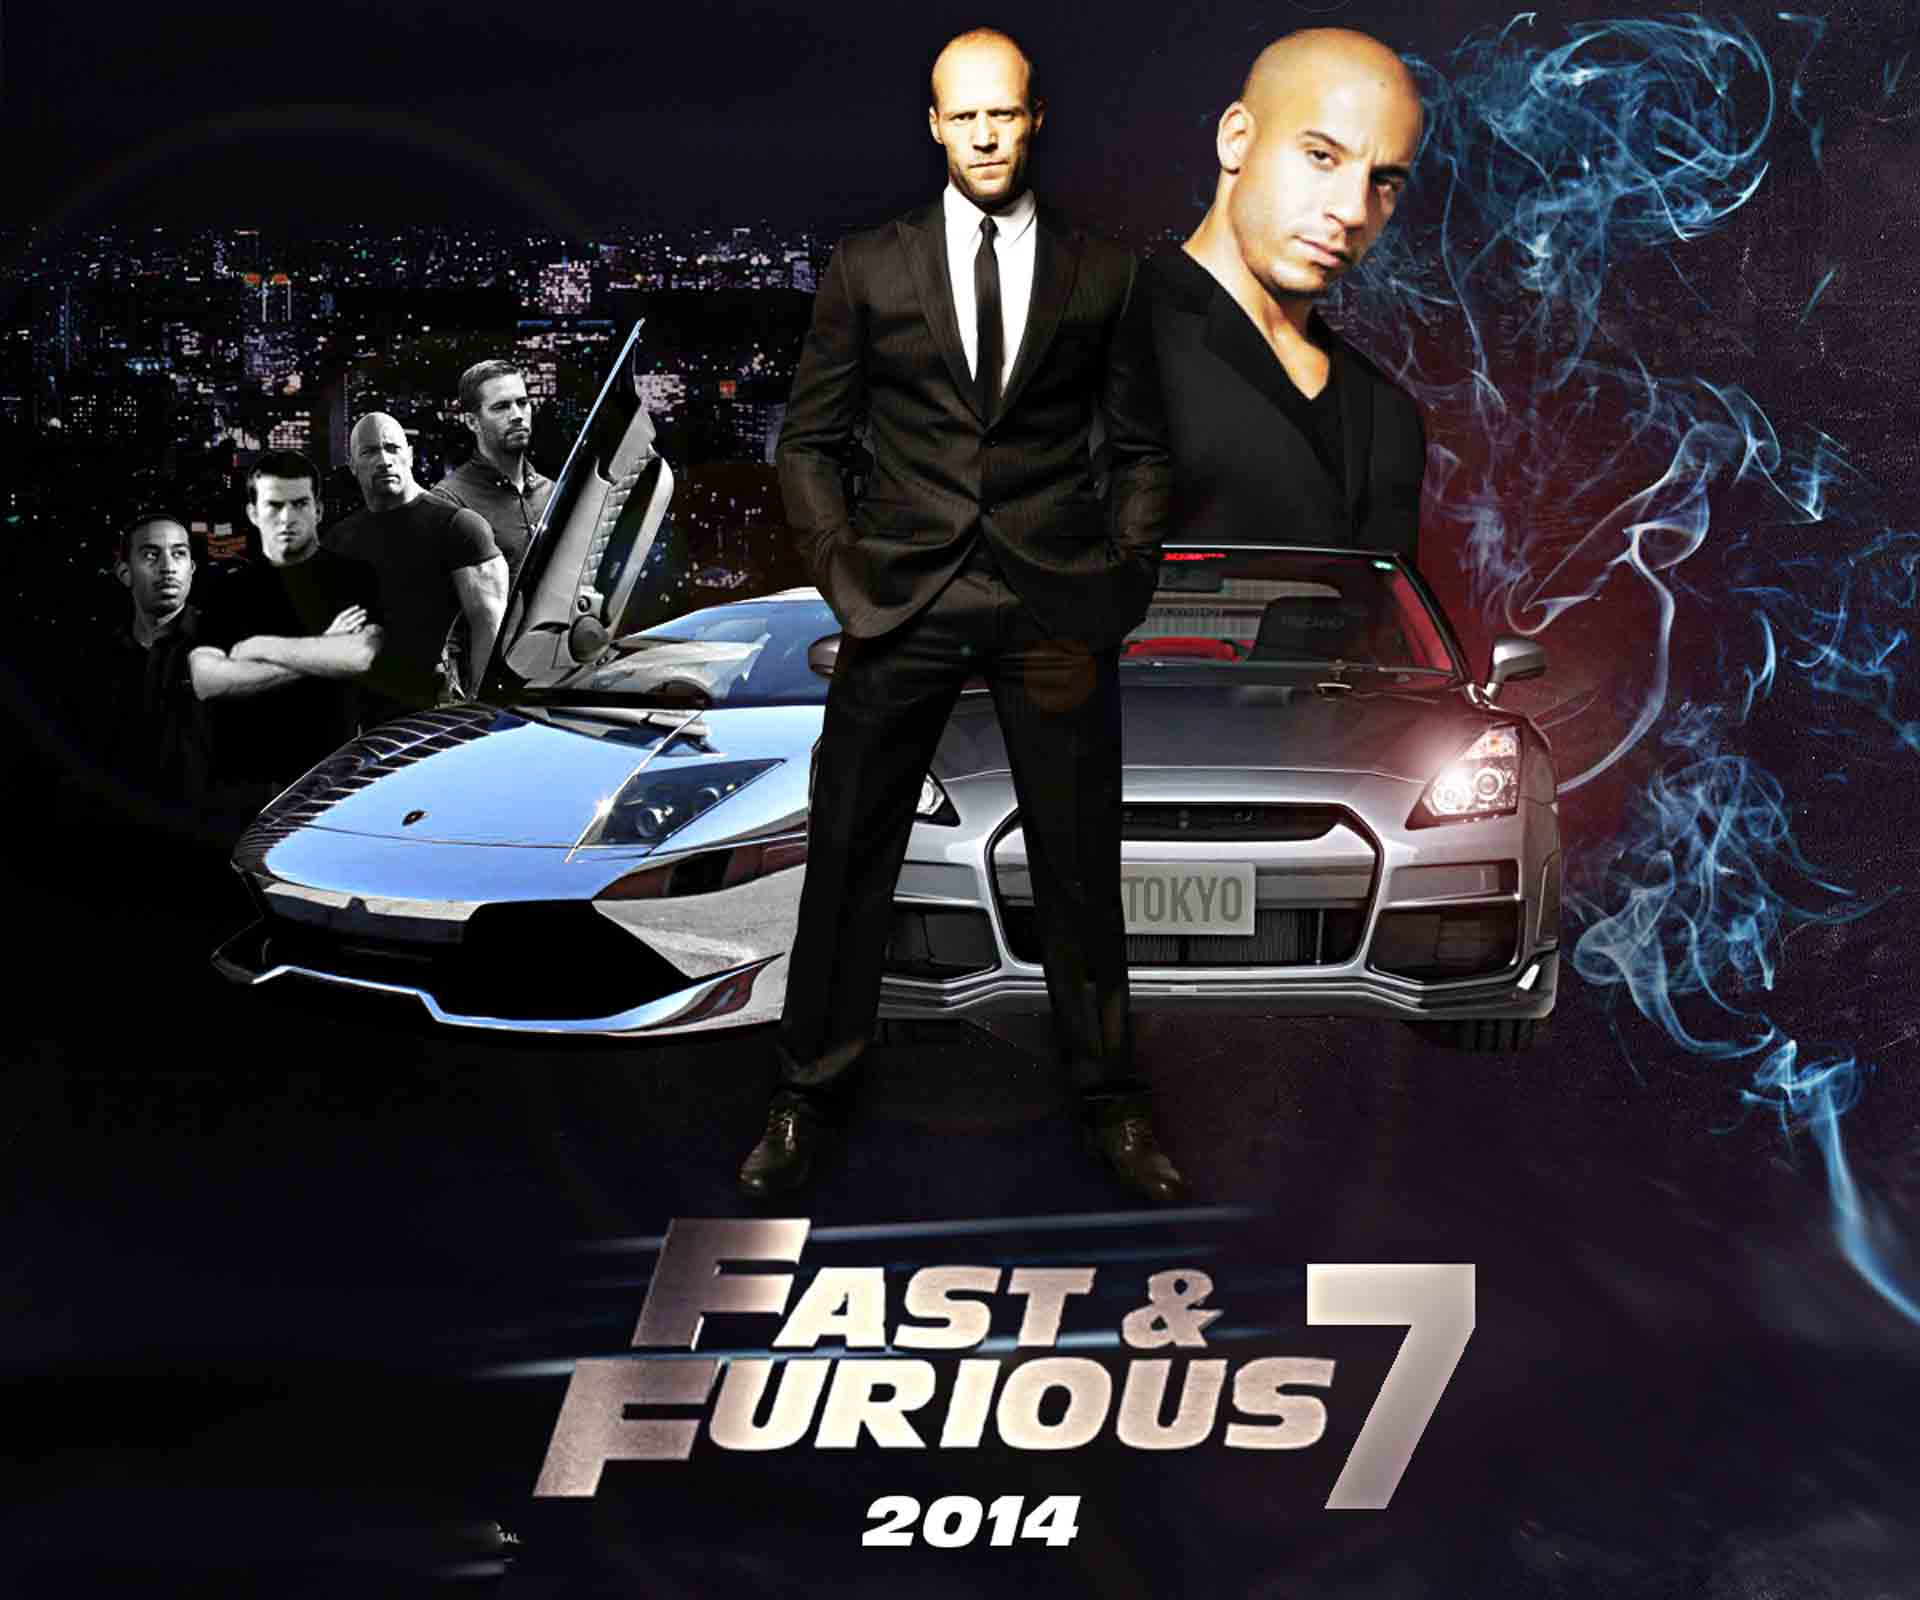 download furious 7 full movie in hindi